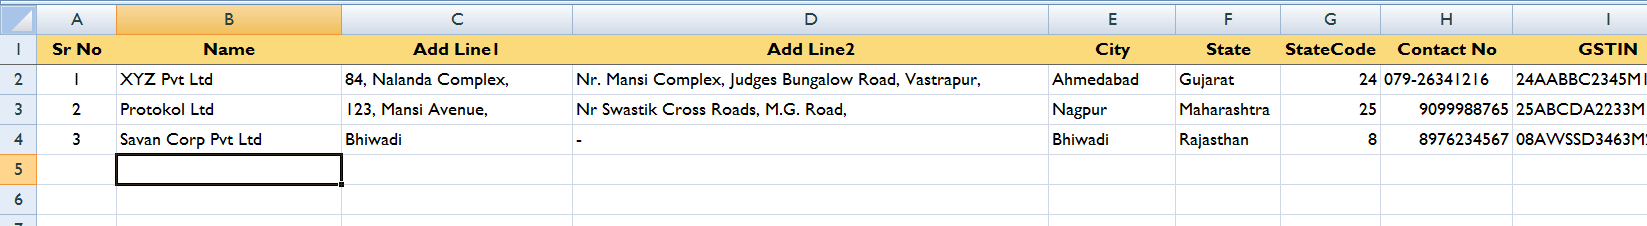 Party Ledger